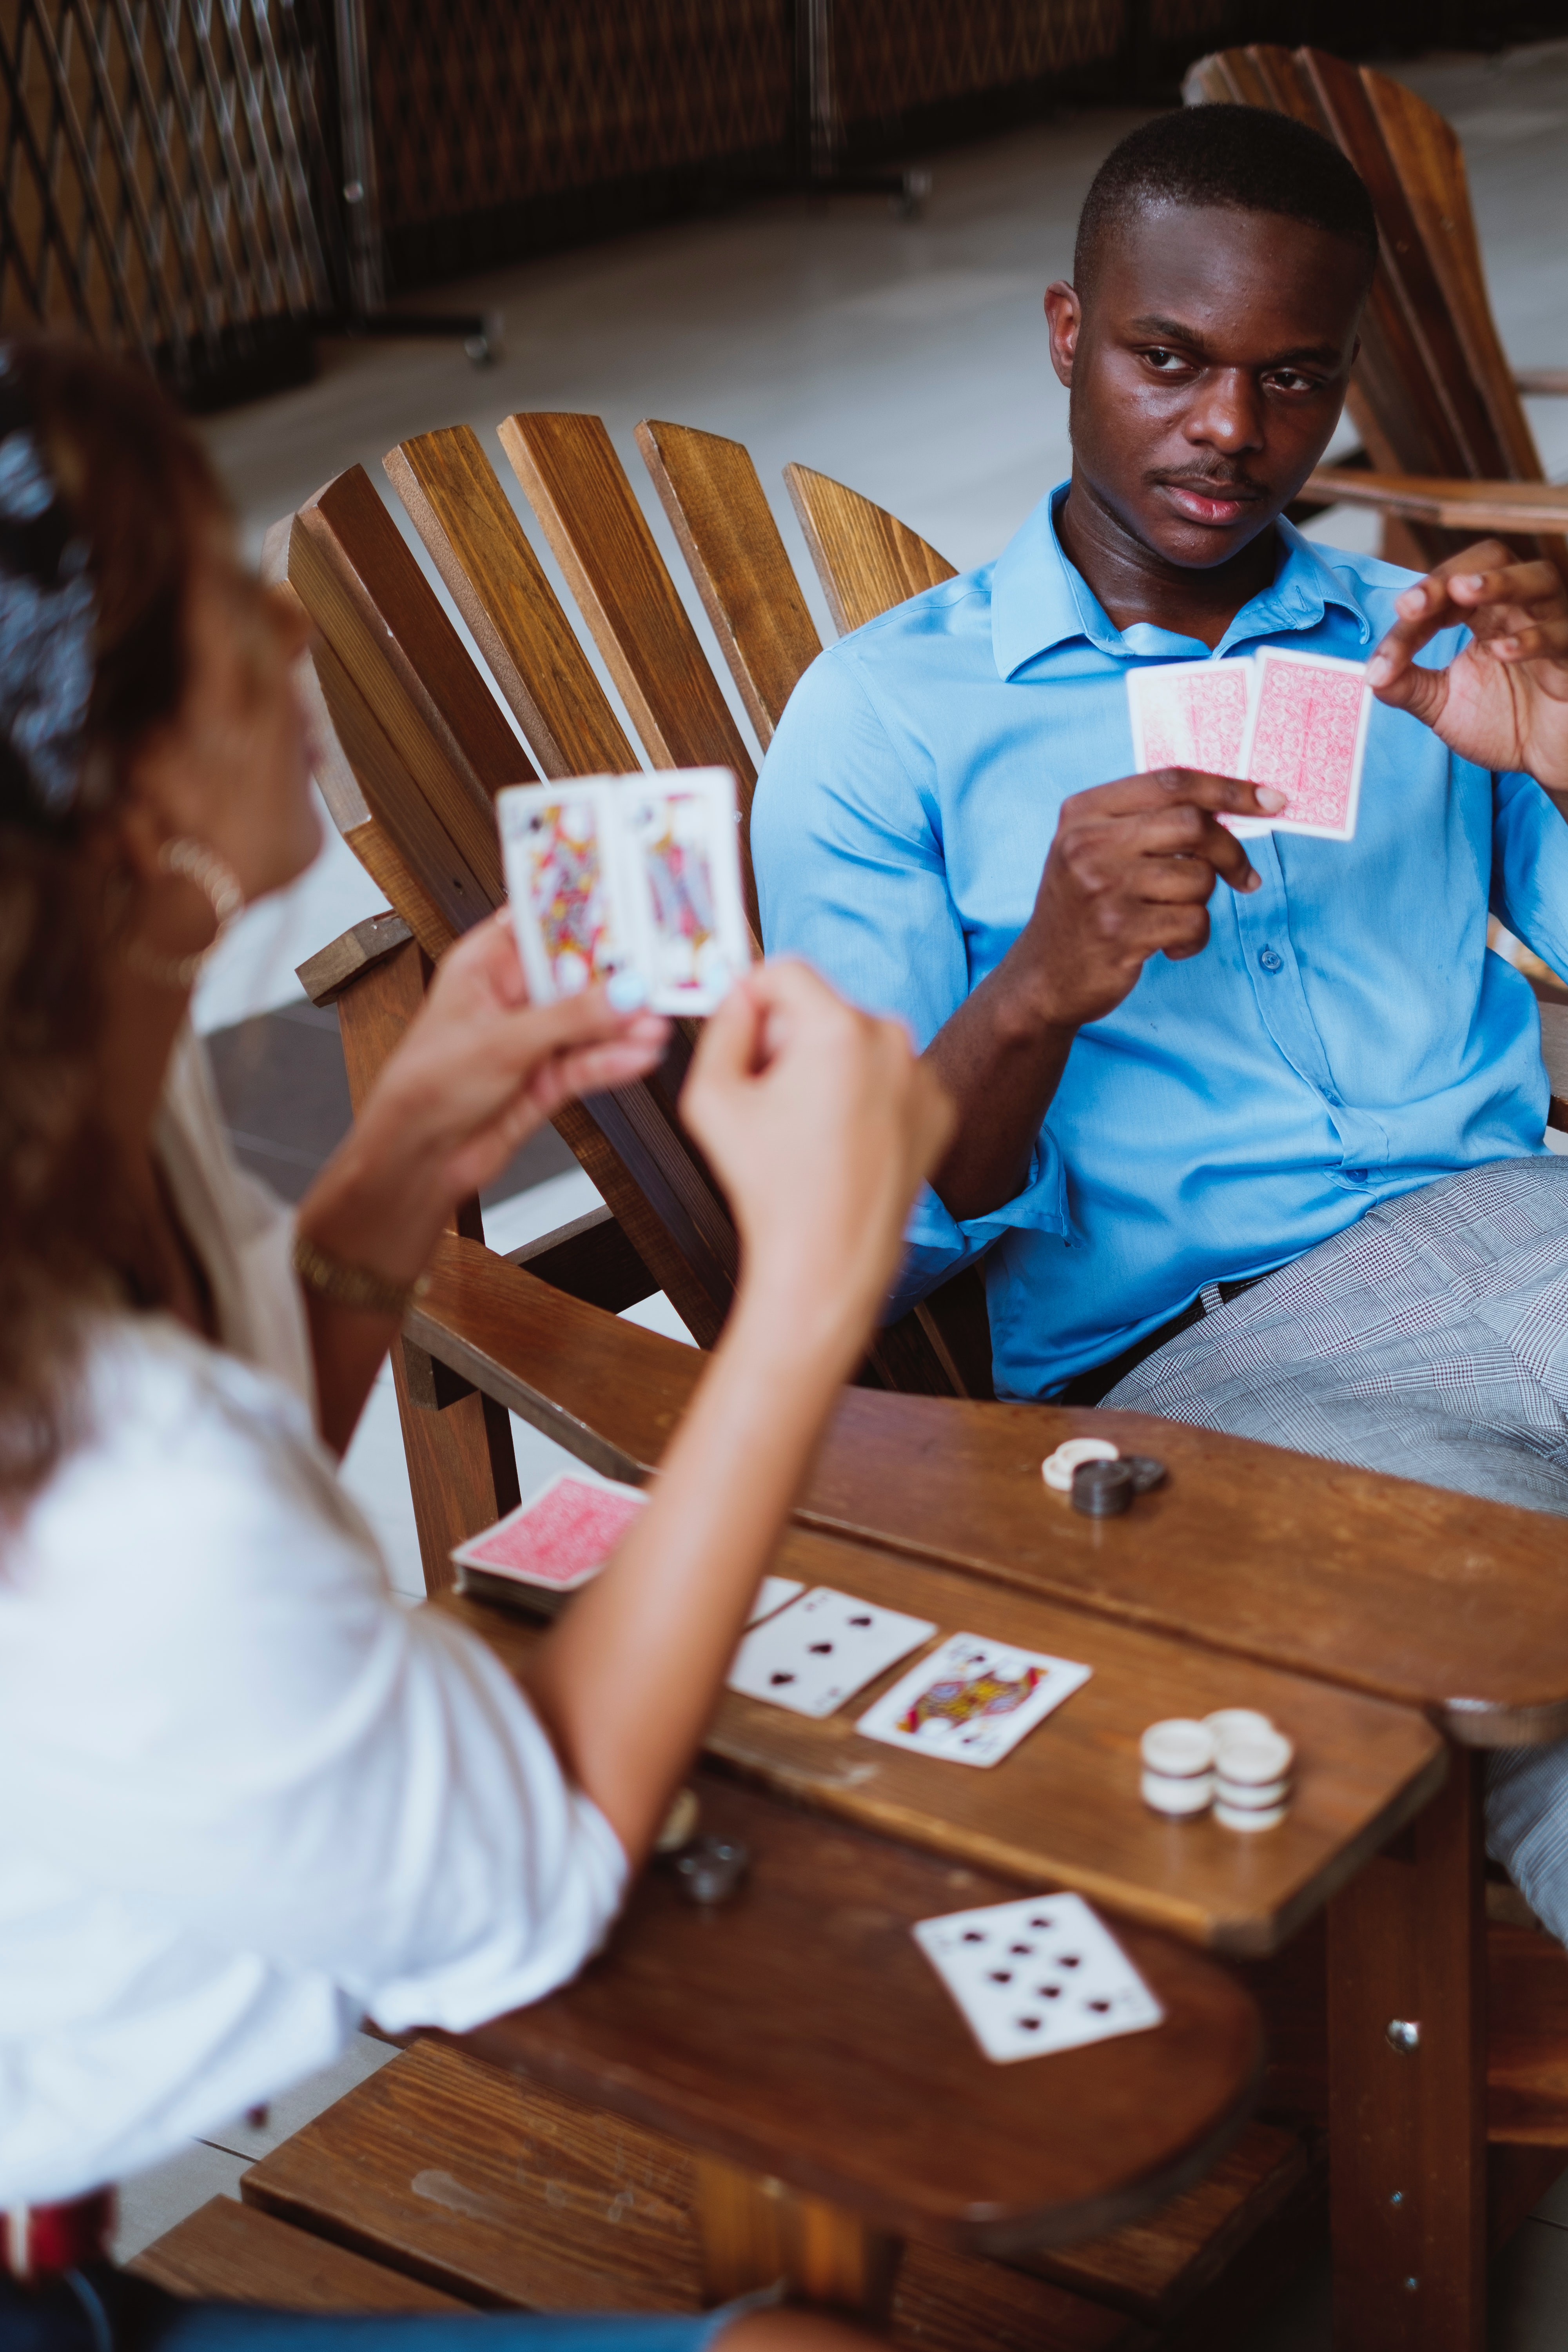 59 Fun Card Games For 2 People